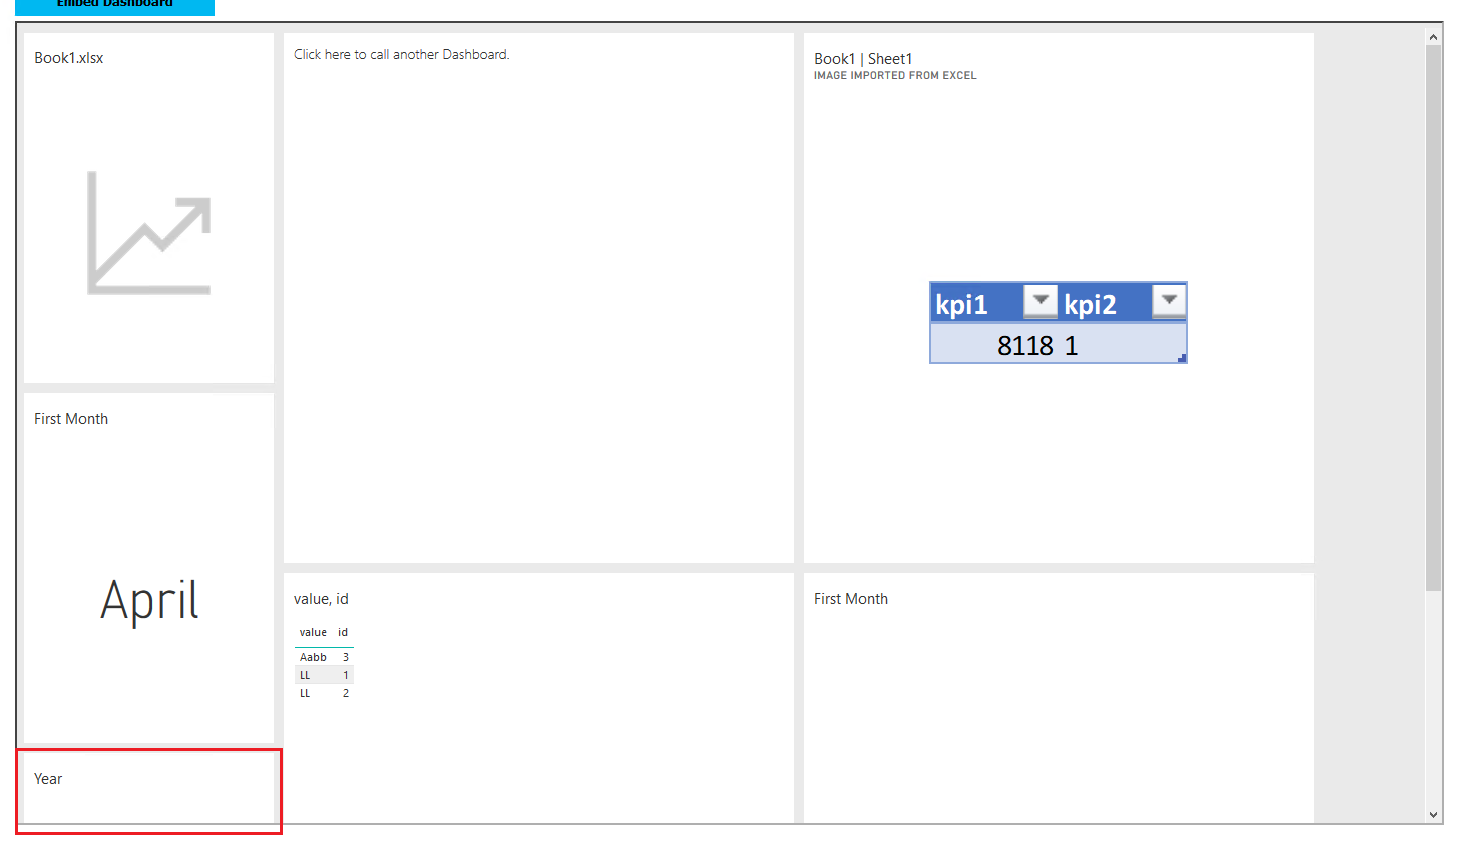 Embedded_Dashboard_tiles_not_loading_if_they_are_mostly_offscreen